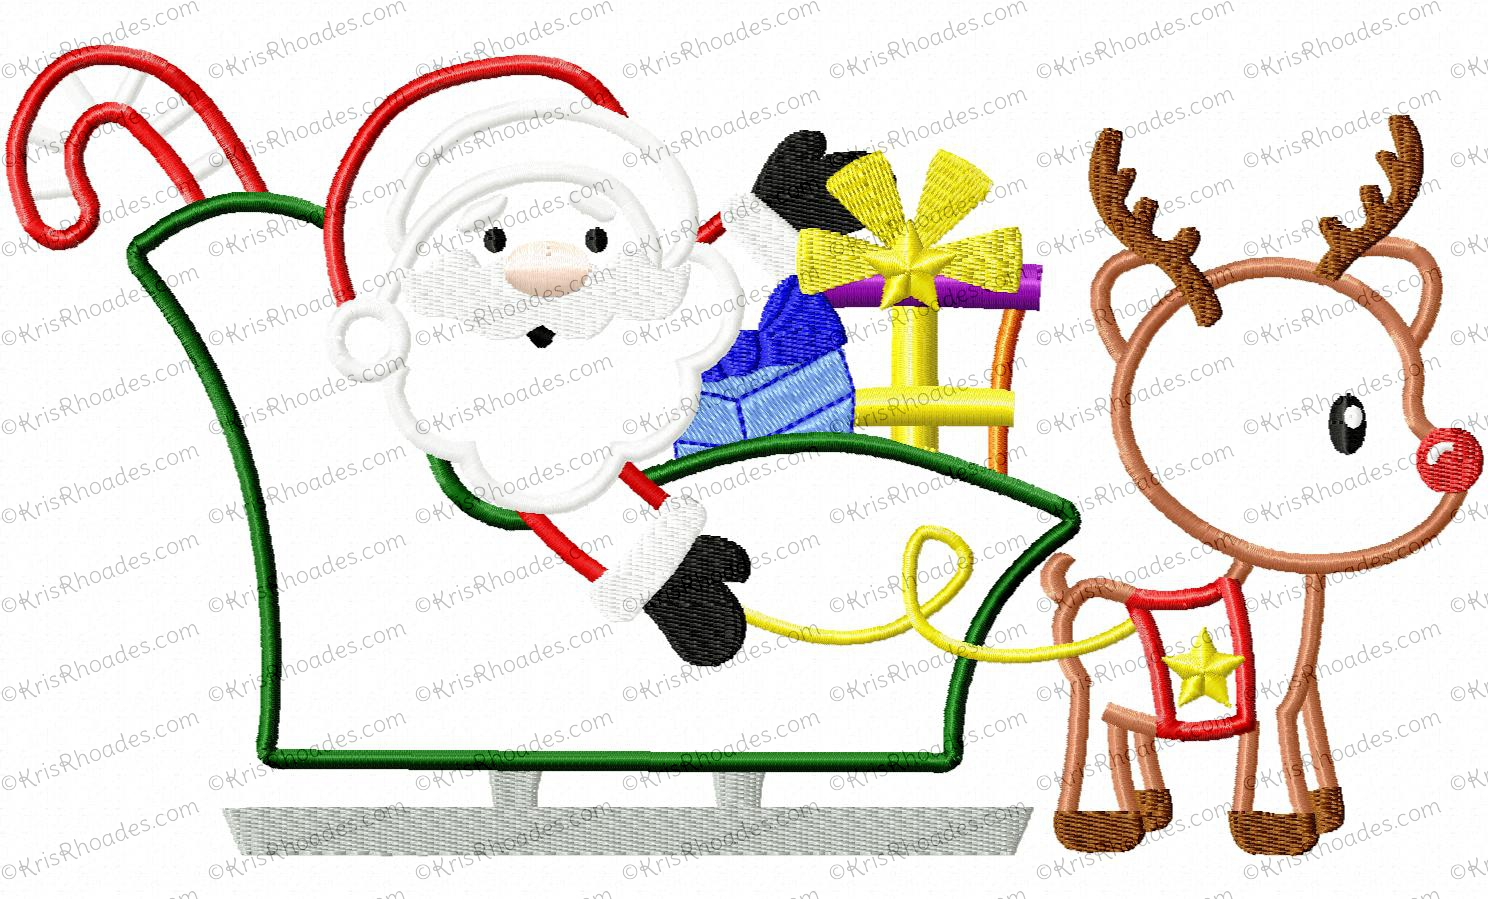 santa sleigh and reindeer applique embroidery design